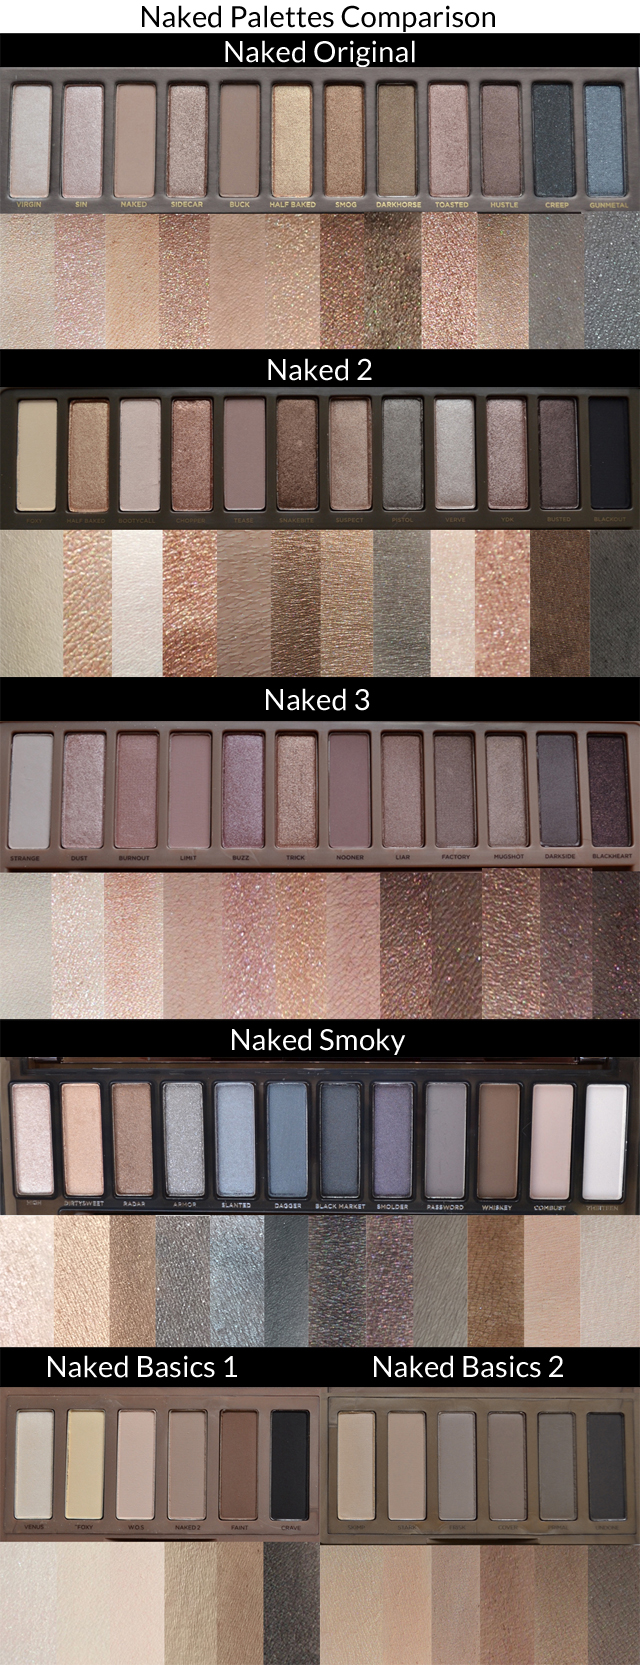 Urban Decay Naked Palette Swatches Comparison - Here is a comparison of all the Urban Decay Naked Palettes. This includes Naked Original, Naked 2, Naked 3, Naked Smoky and Naked Basics 1 and Naked Basics 2